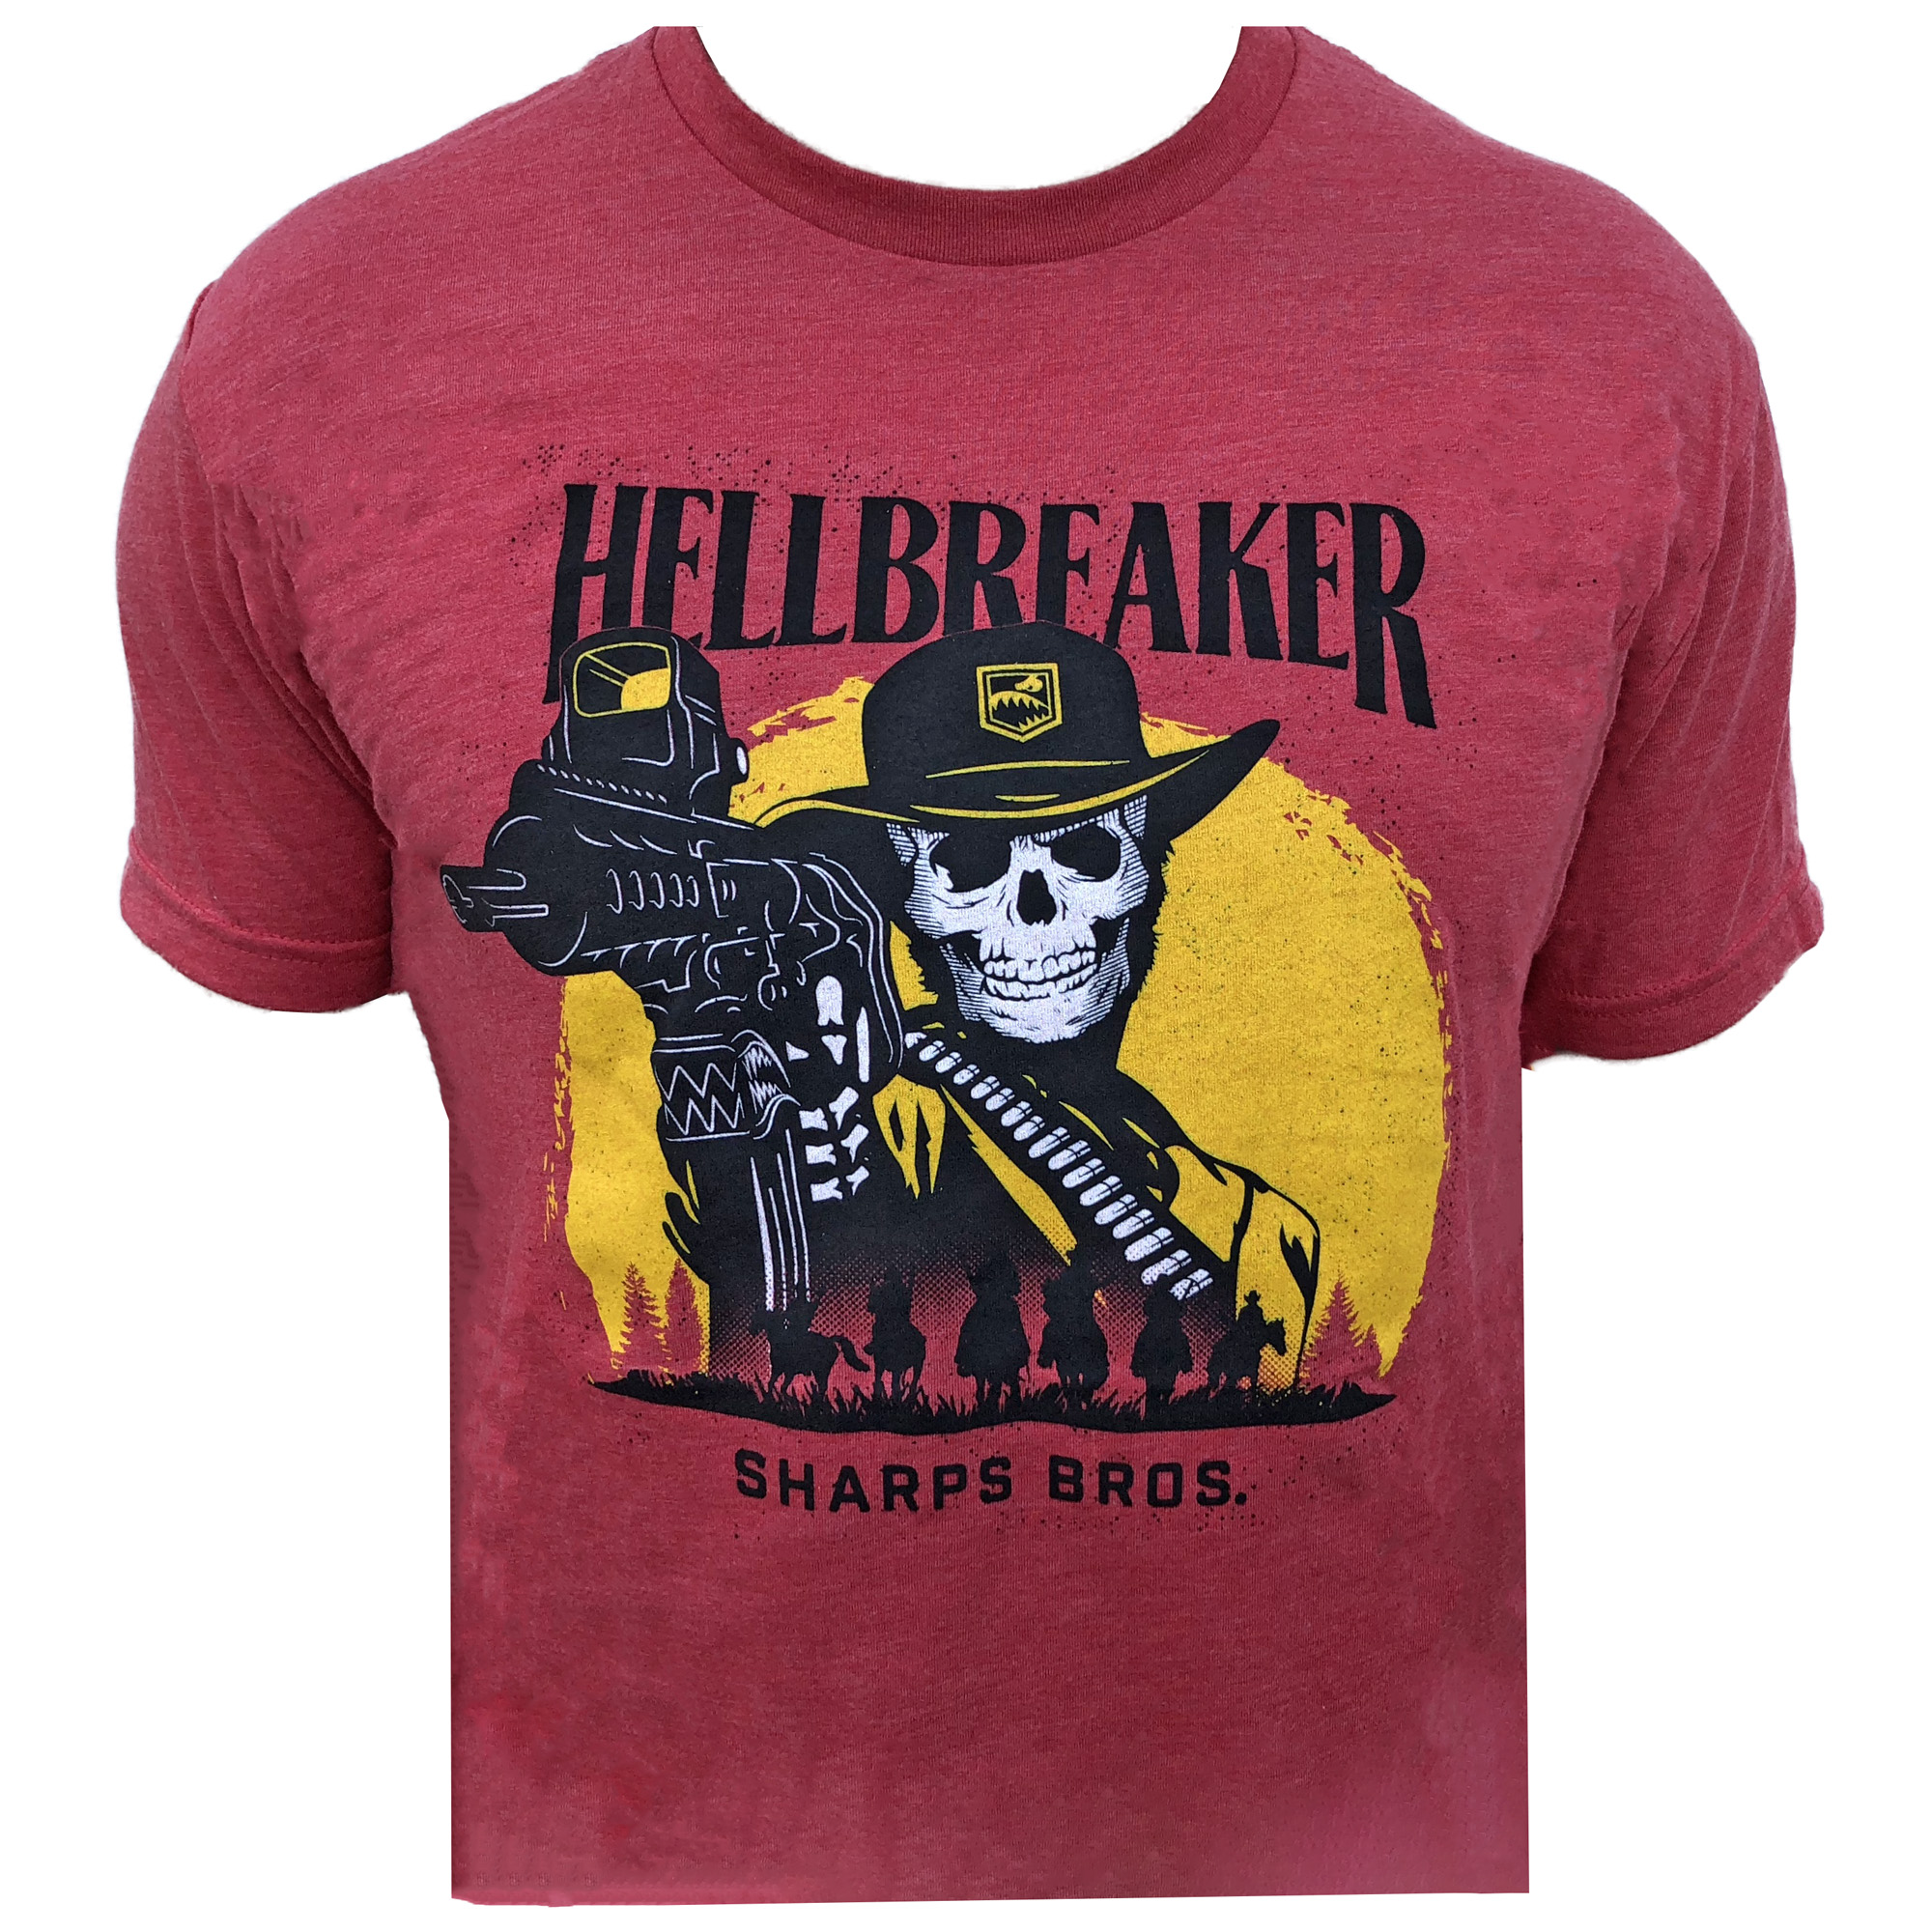 Sharps Bros T-shirts feature an athletic cut that uses combed cotton for a soft feel.